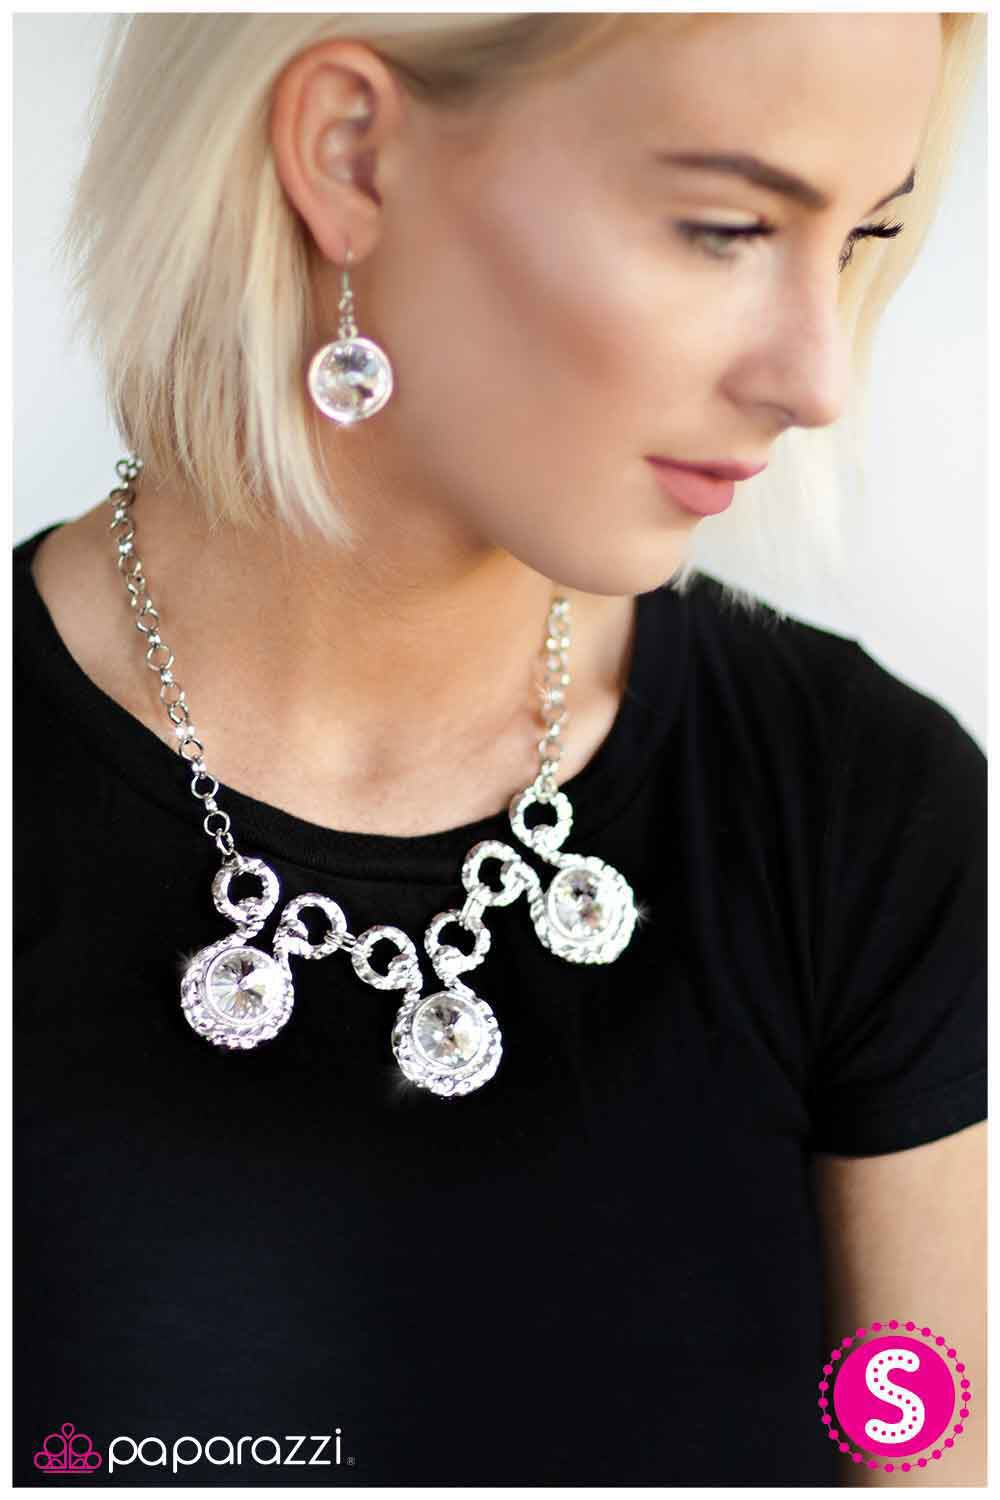 Christmas Party? Valentines Day coming great necklace/earring set $5  www.sasnstyle.com